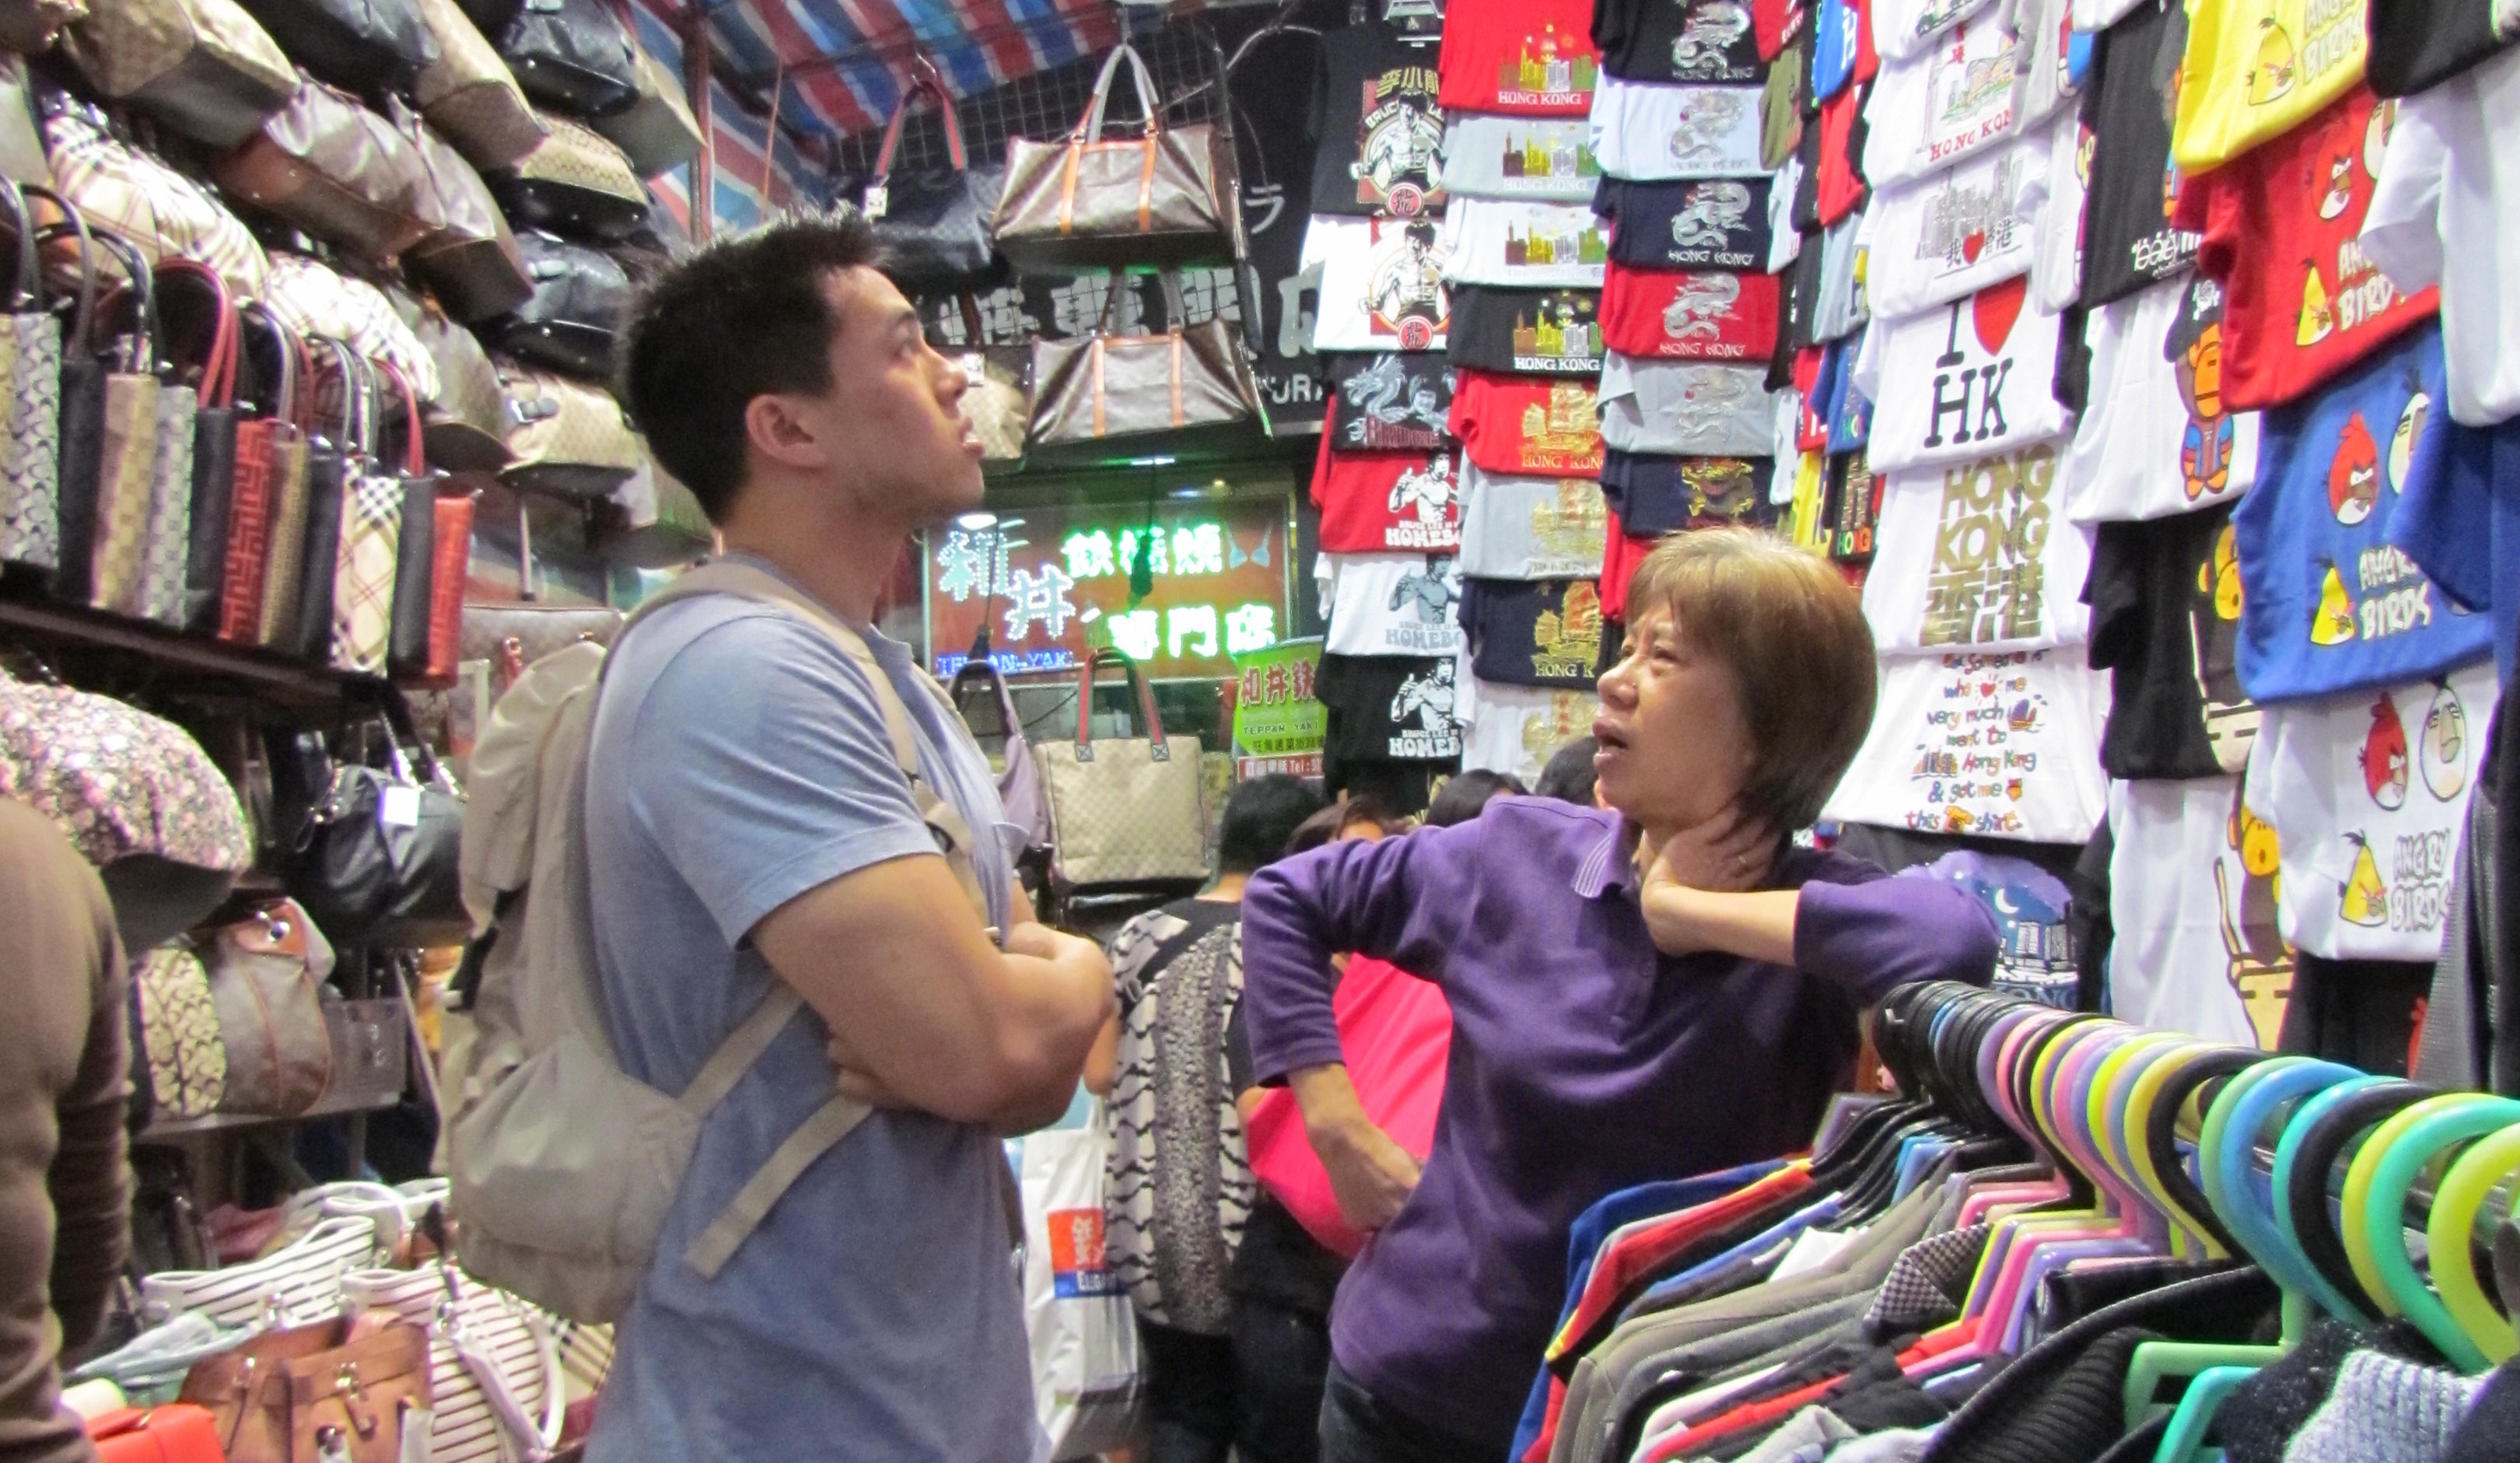 Haggling in market - How to Haggle in Chinese when Shopping